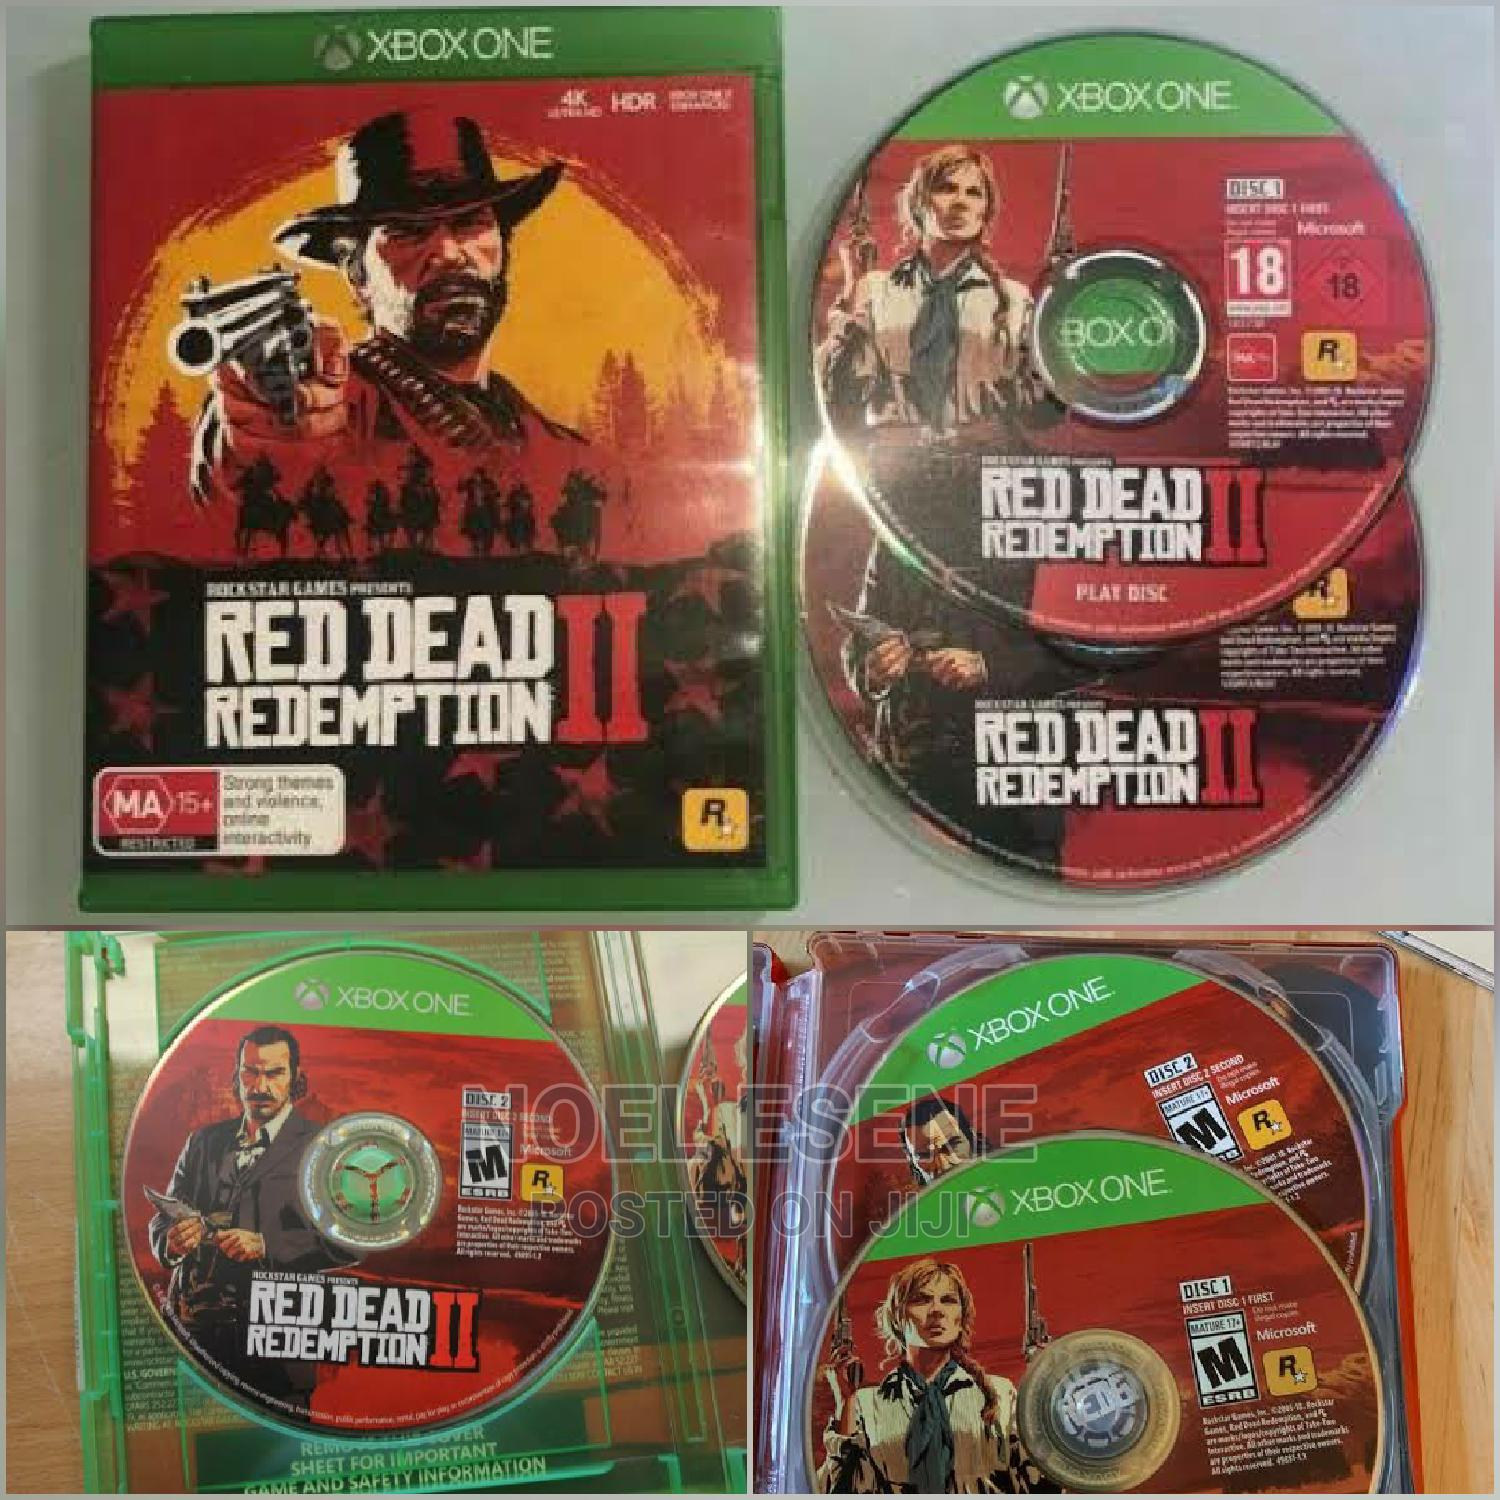 Archive: Red Dead Redemption 2 for Xbox One Available